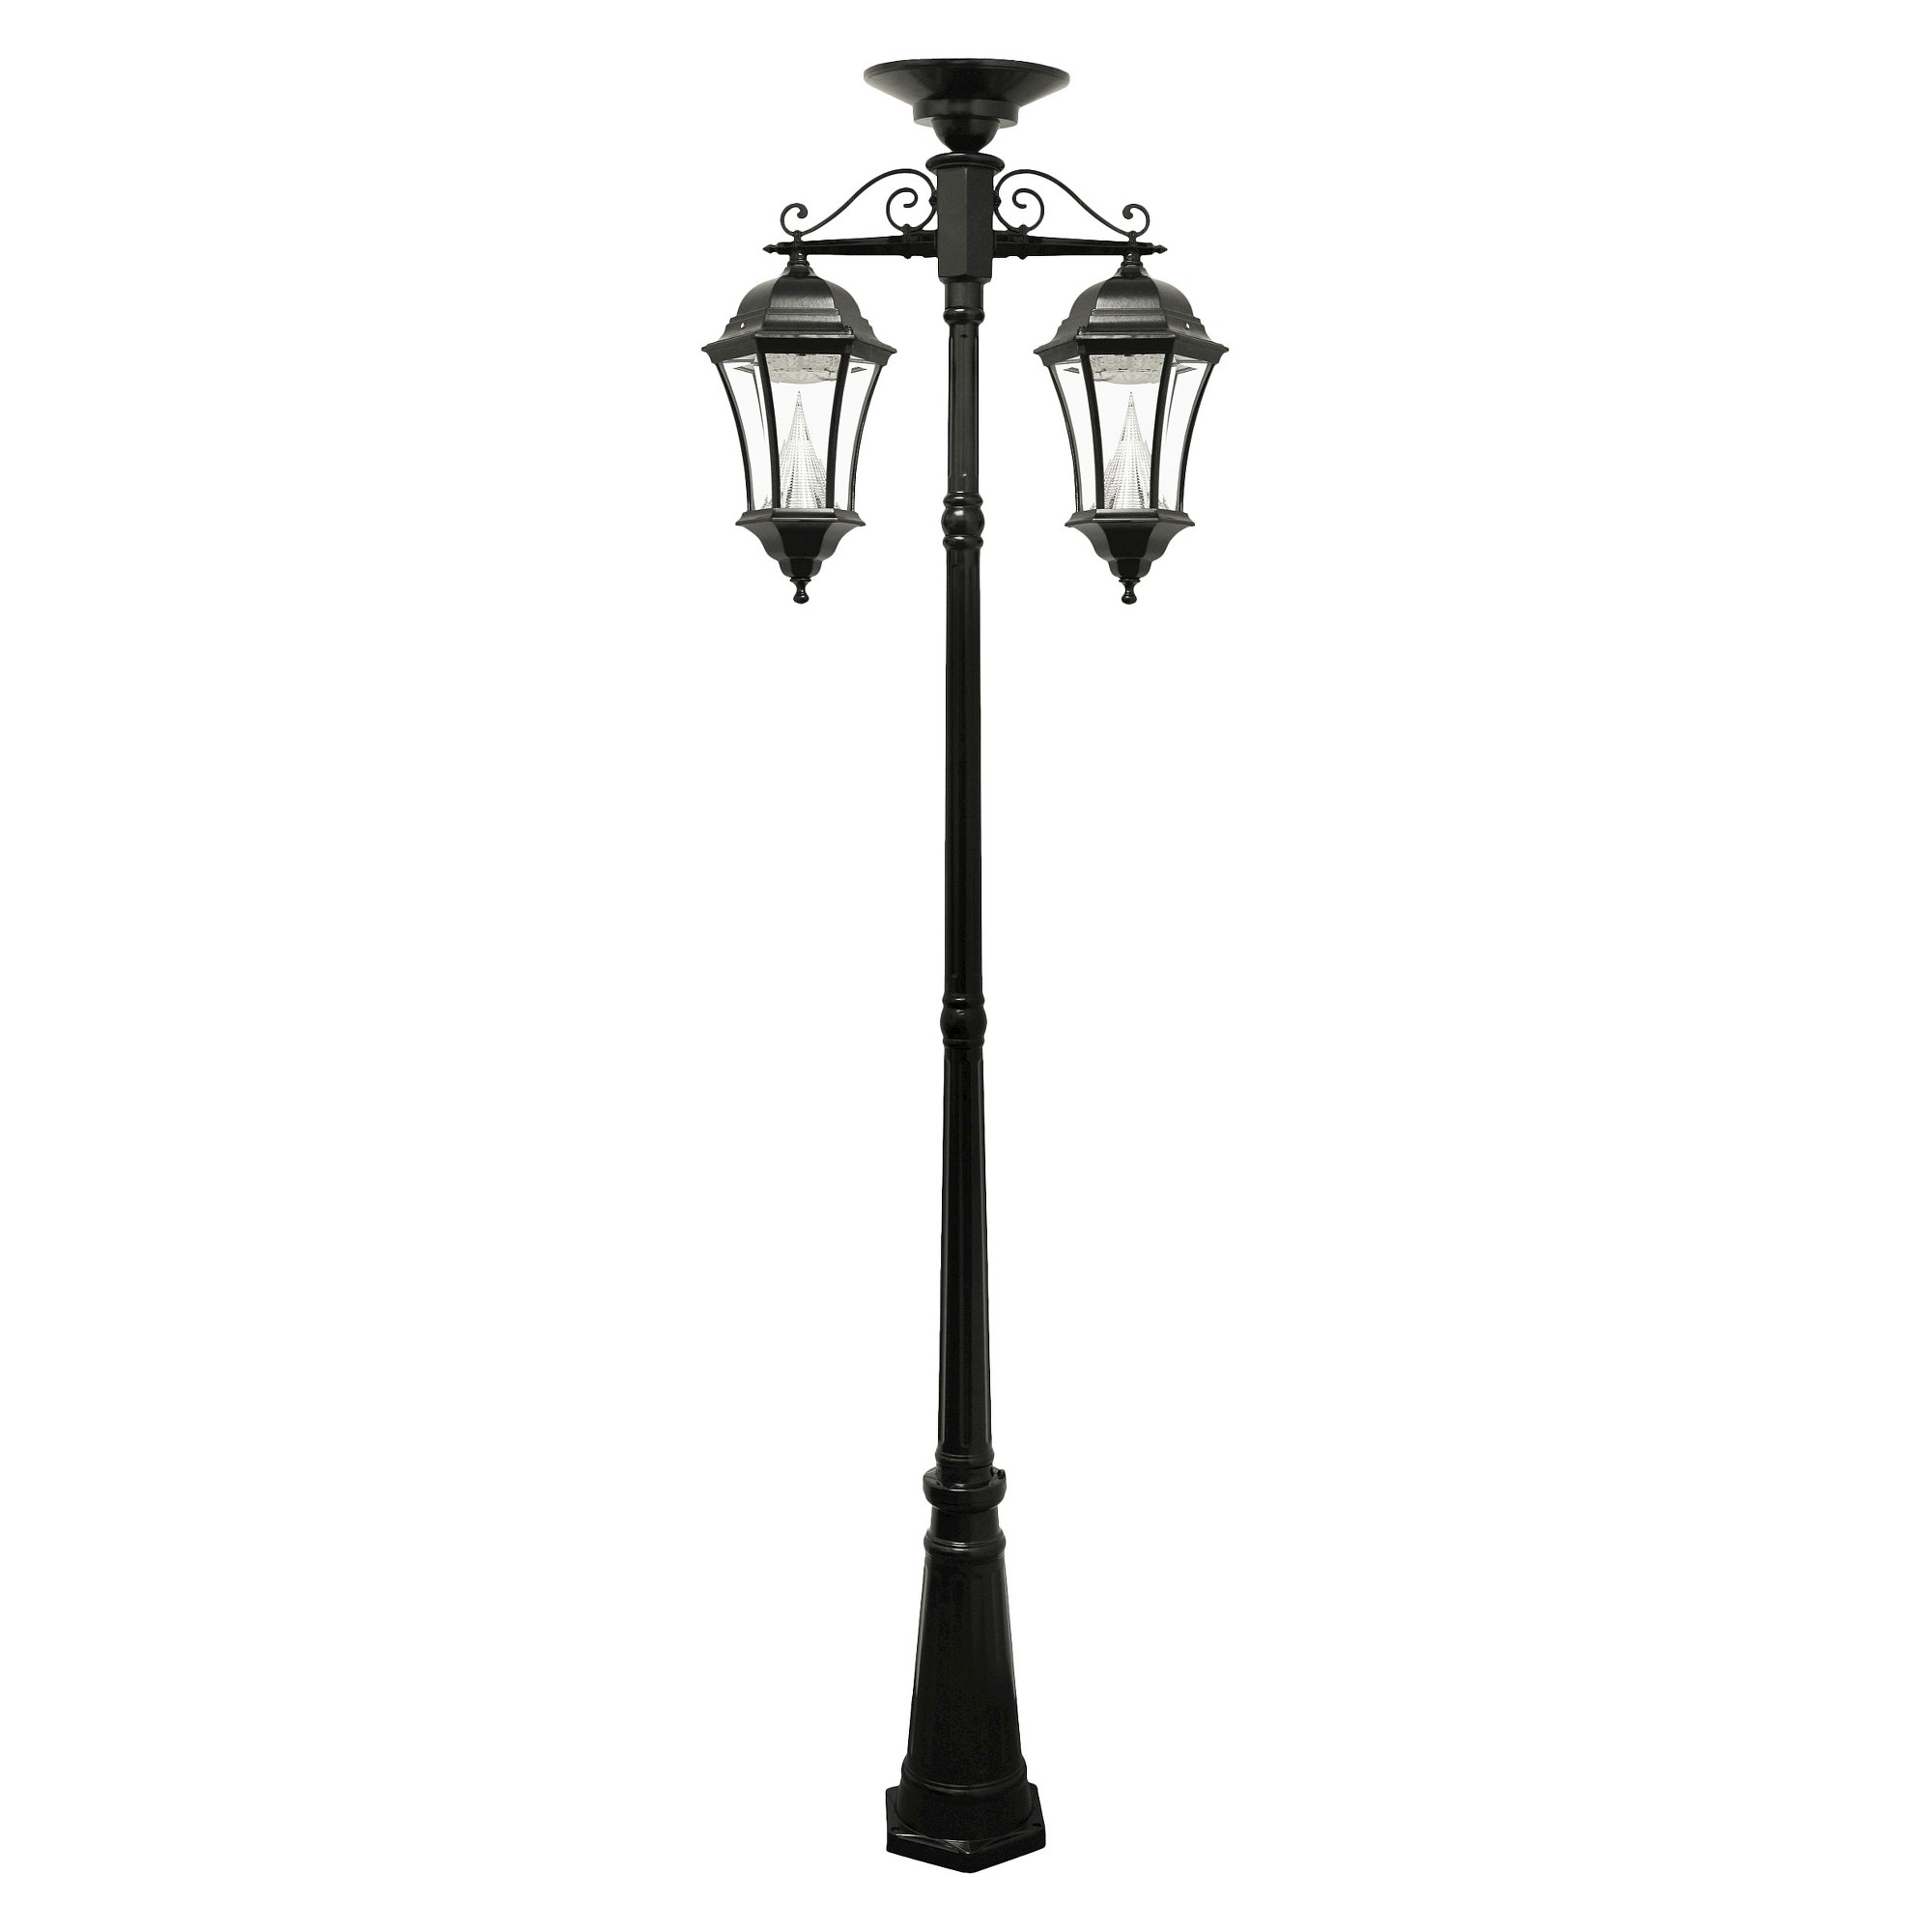 Gama Sonic Victorian Solar Lamp Post and Down-Hanging Lanterns ... for victorian hanging lamp post  49jwn